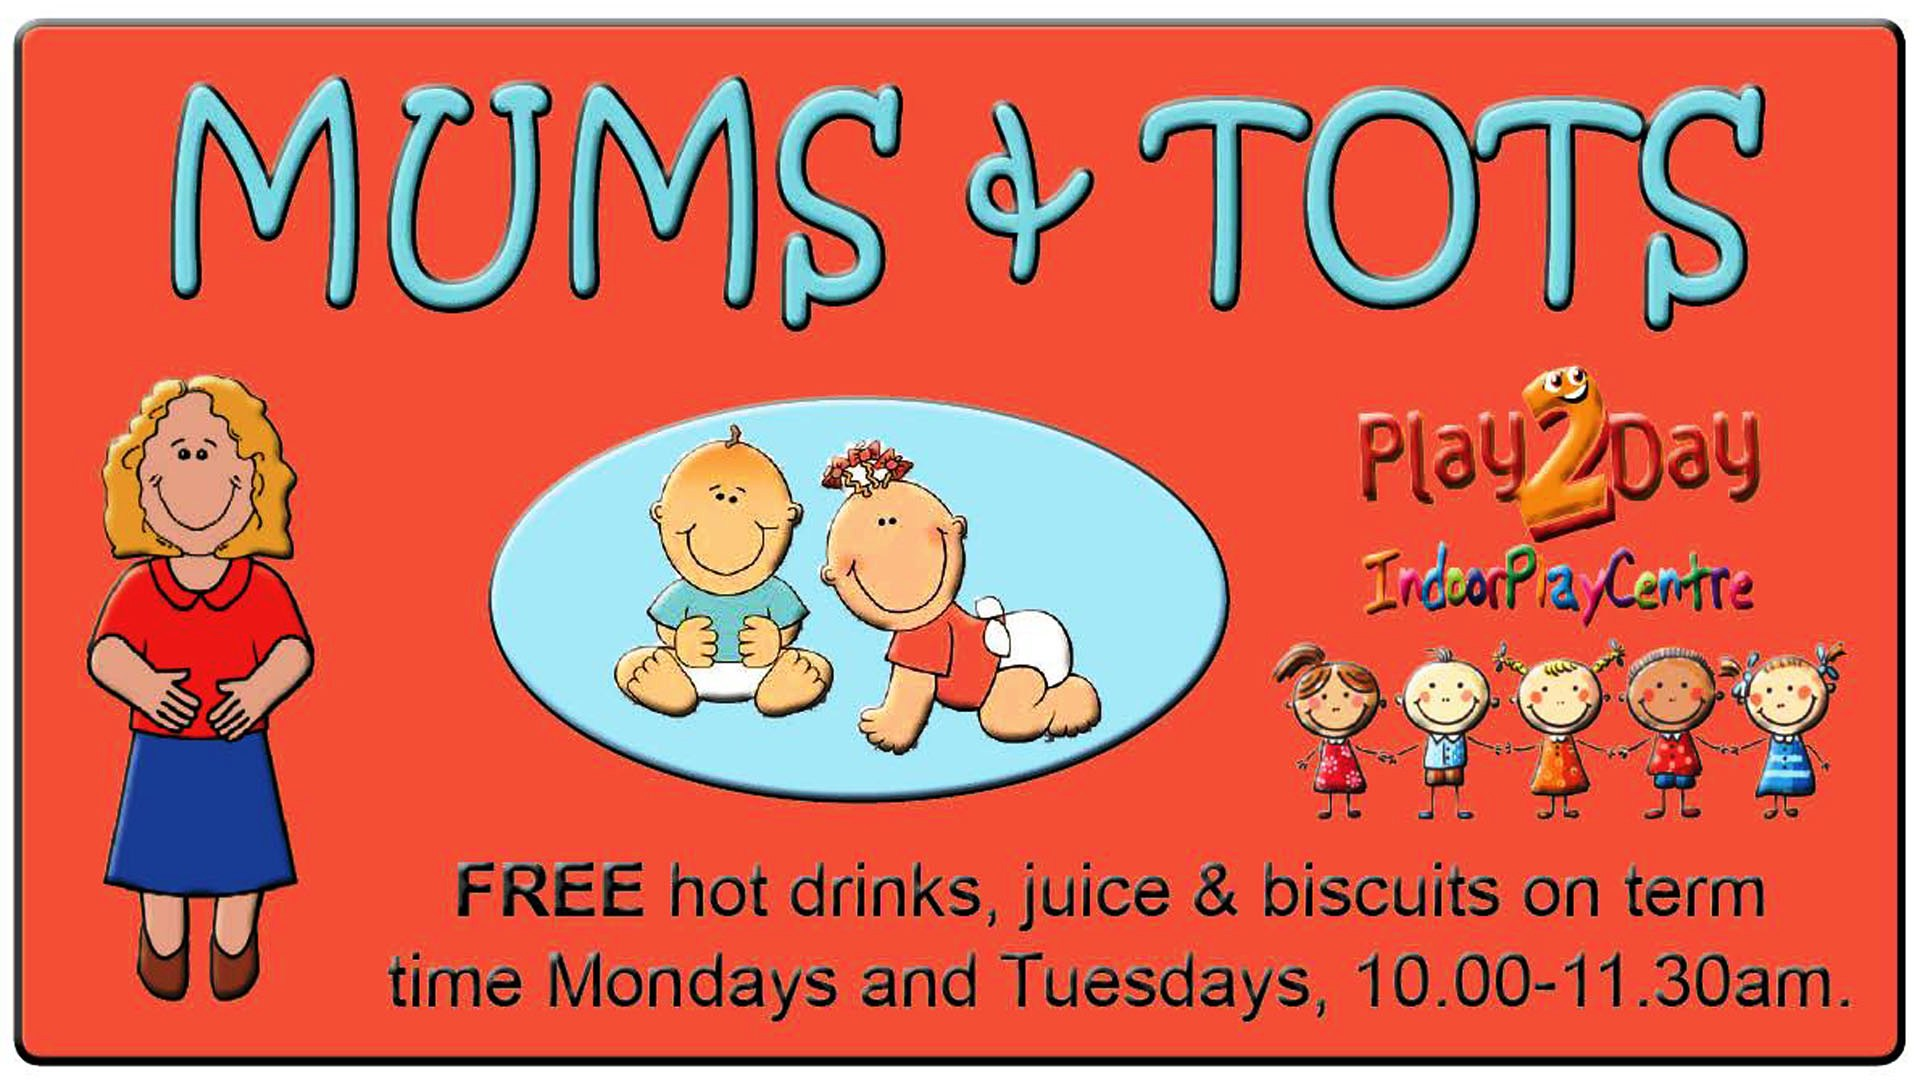 Mums & Tots children's adventure play sessions at Play2Day Wisbech